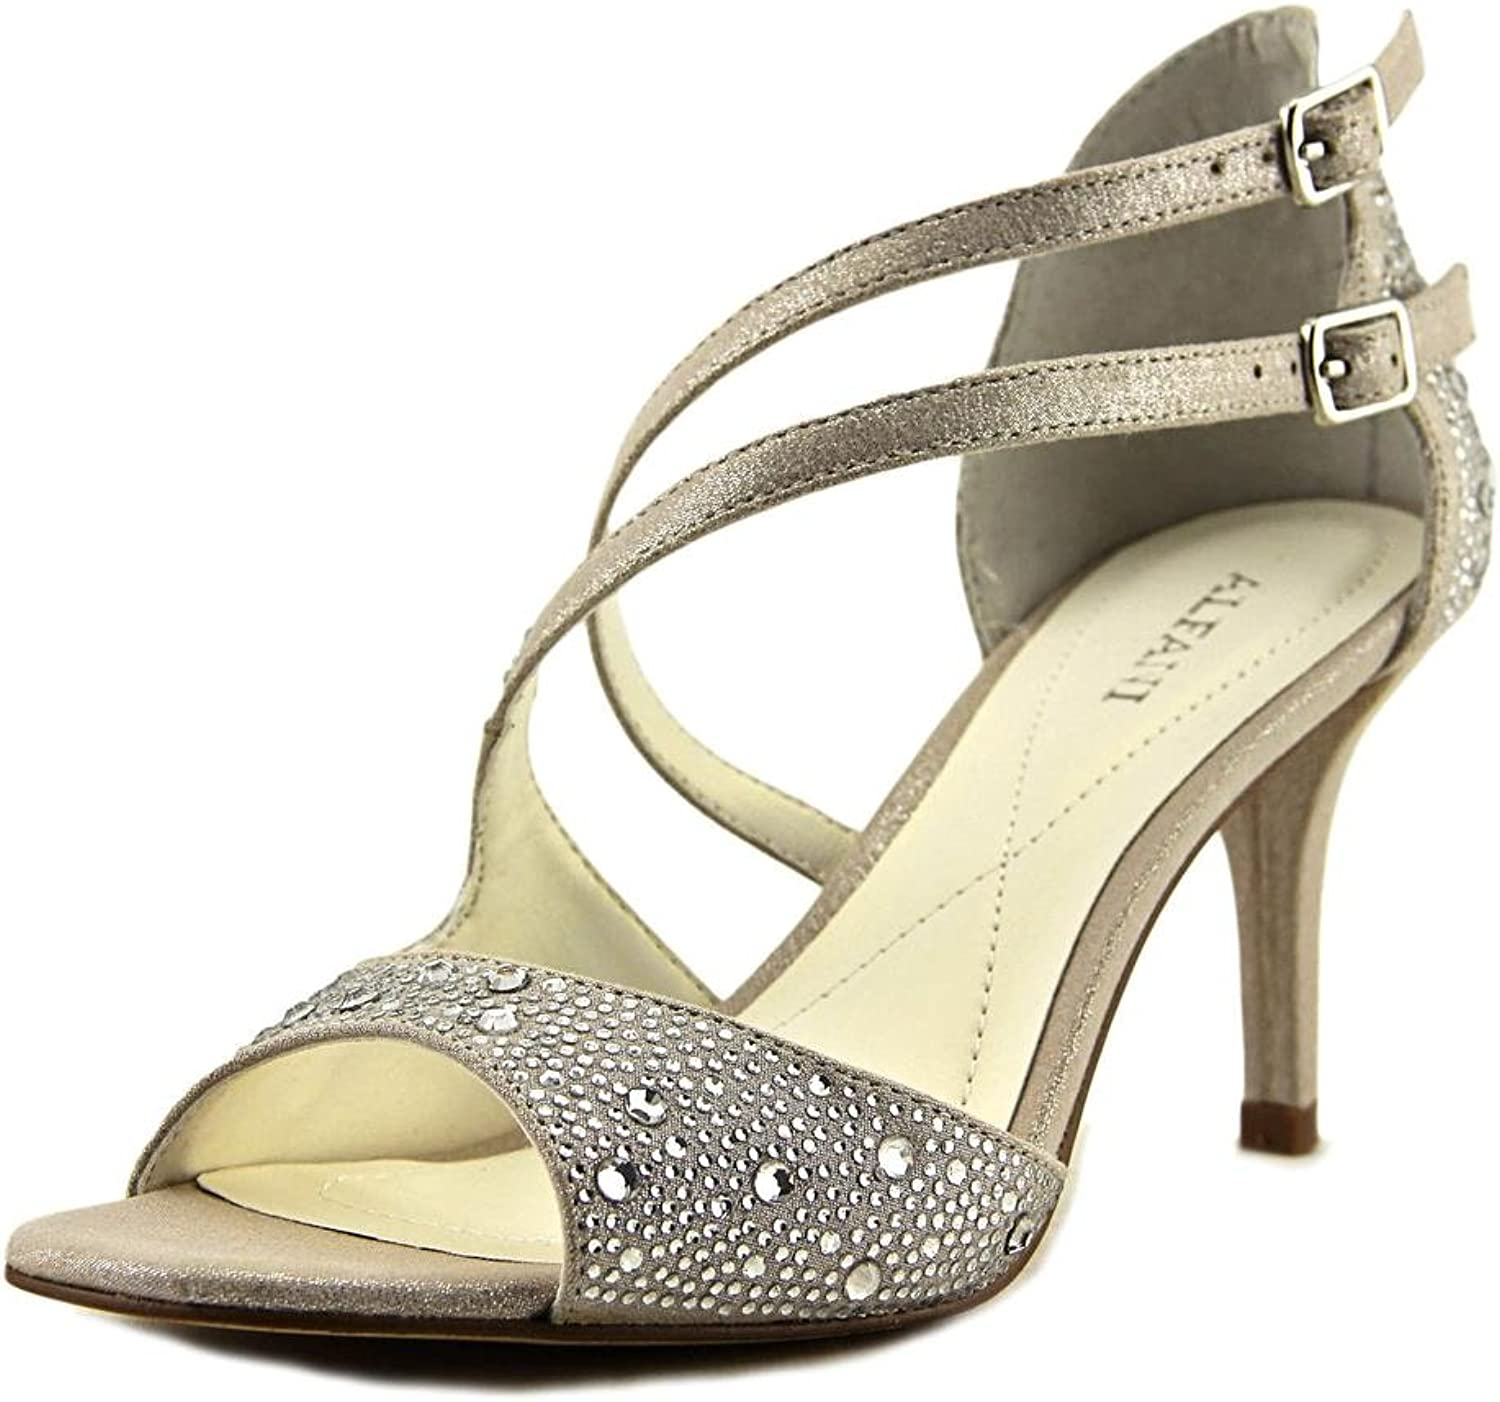 A35 Cremena Sparkle Strappy Dress Sandals, Silver, 7.5 US